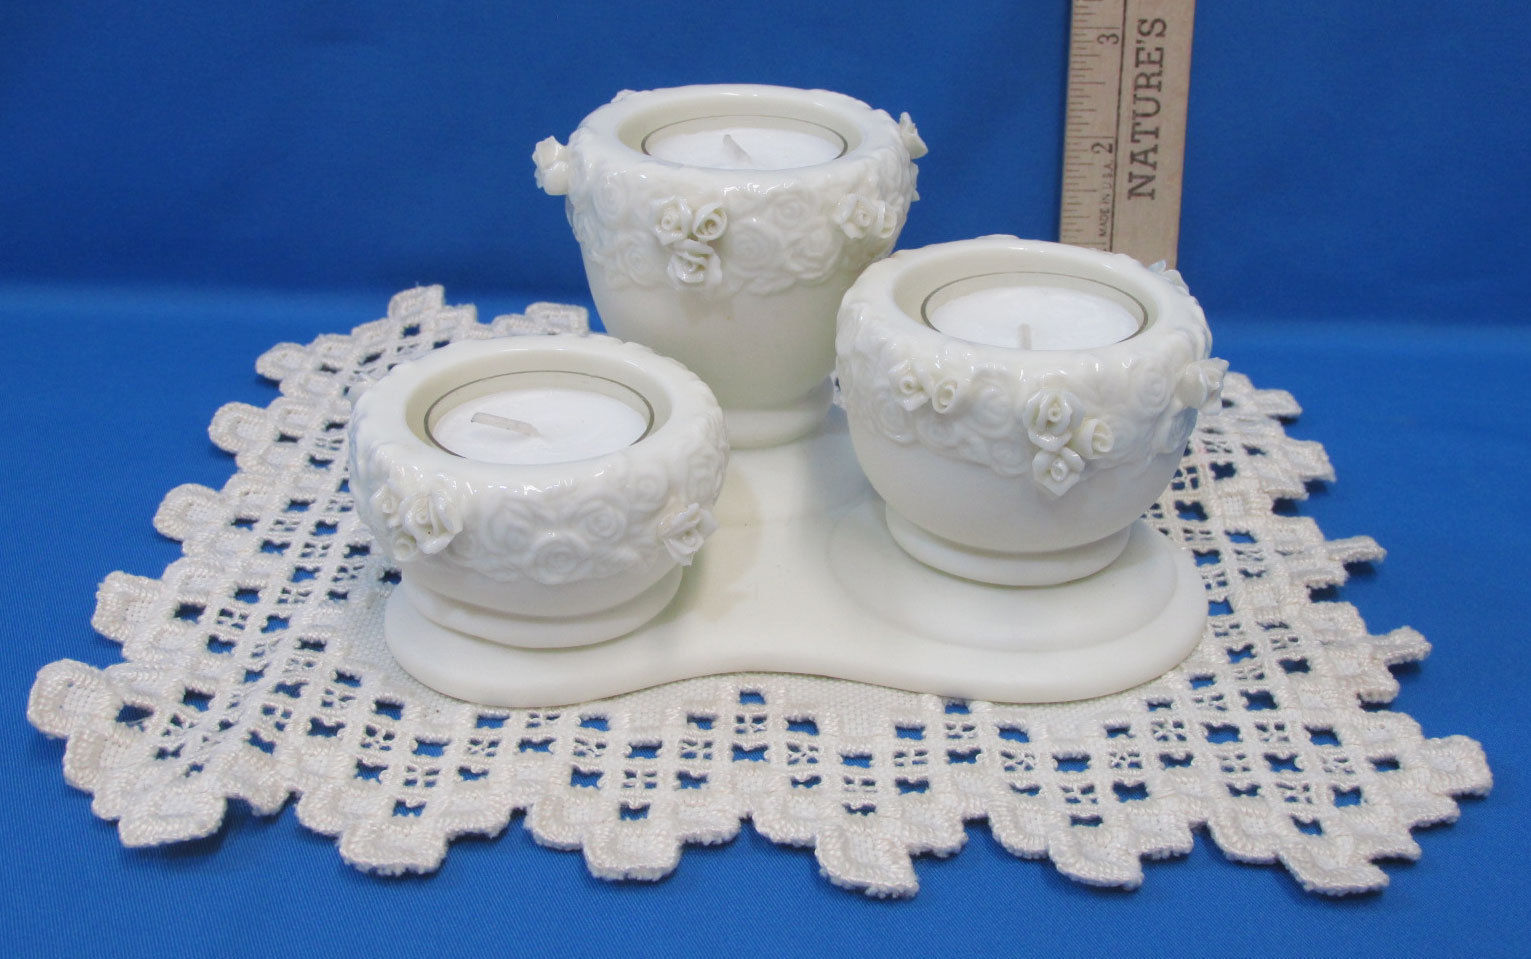 Primary image for Partylite Rose Urn Tealight Candle Holder Includes Candles & Vintage Doily